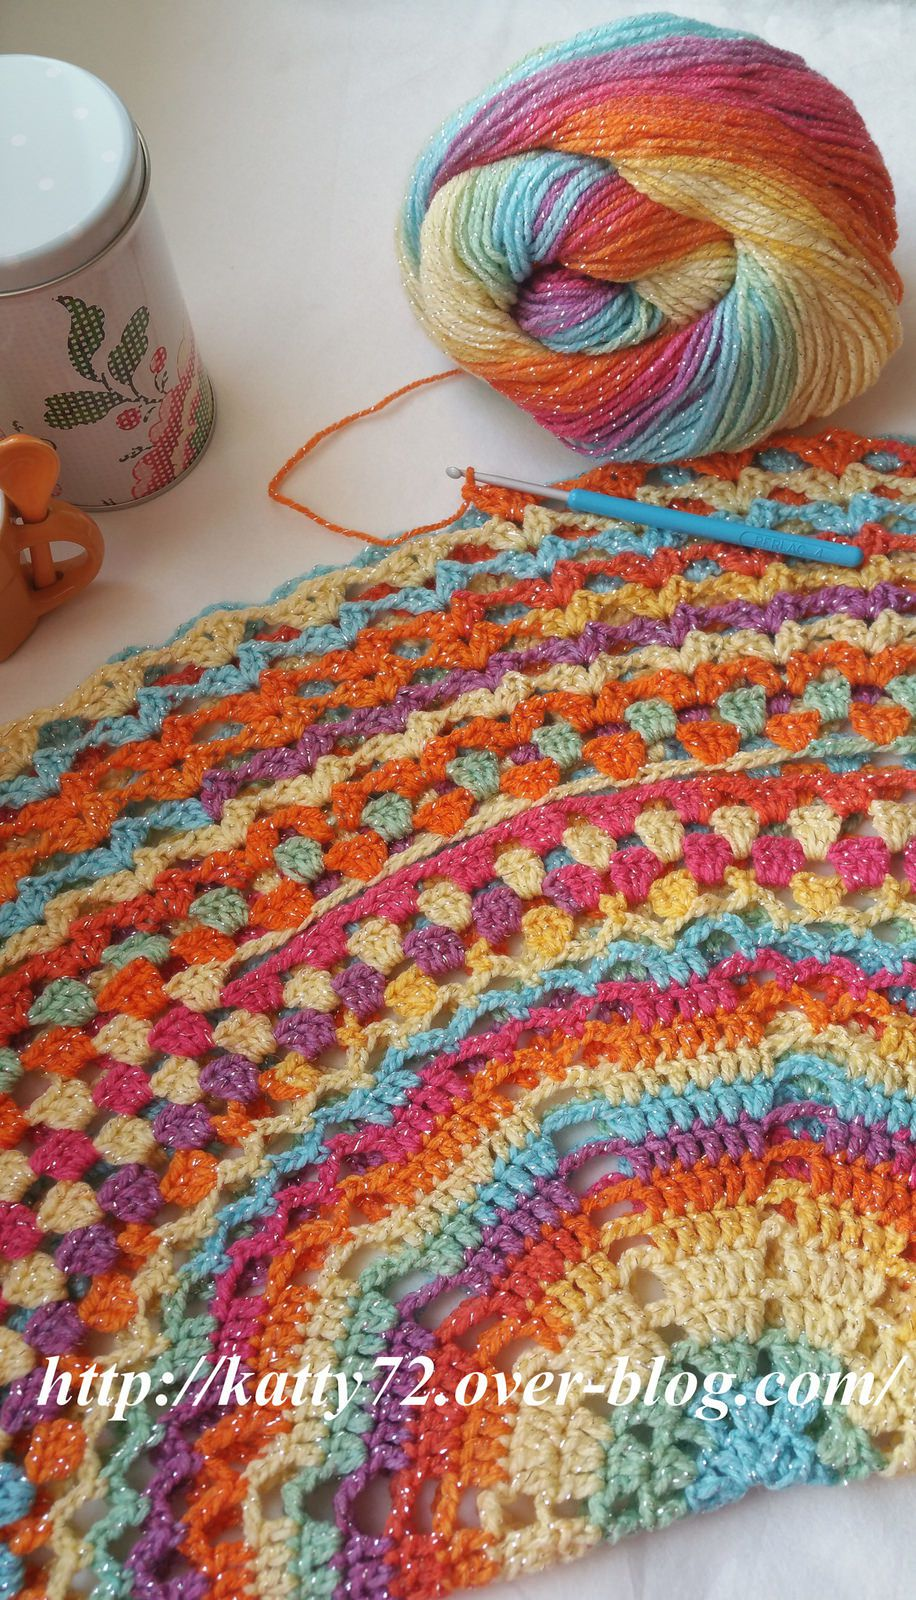 Crochet : Work in progress